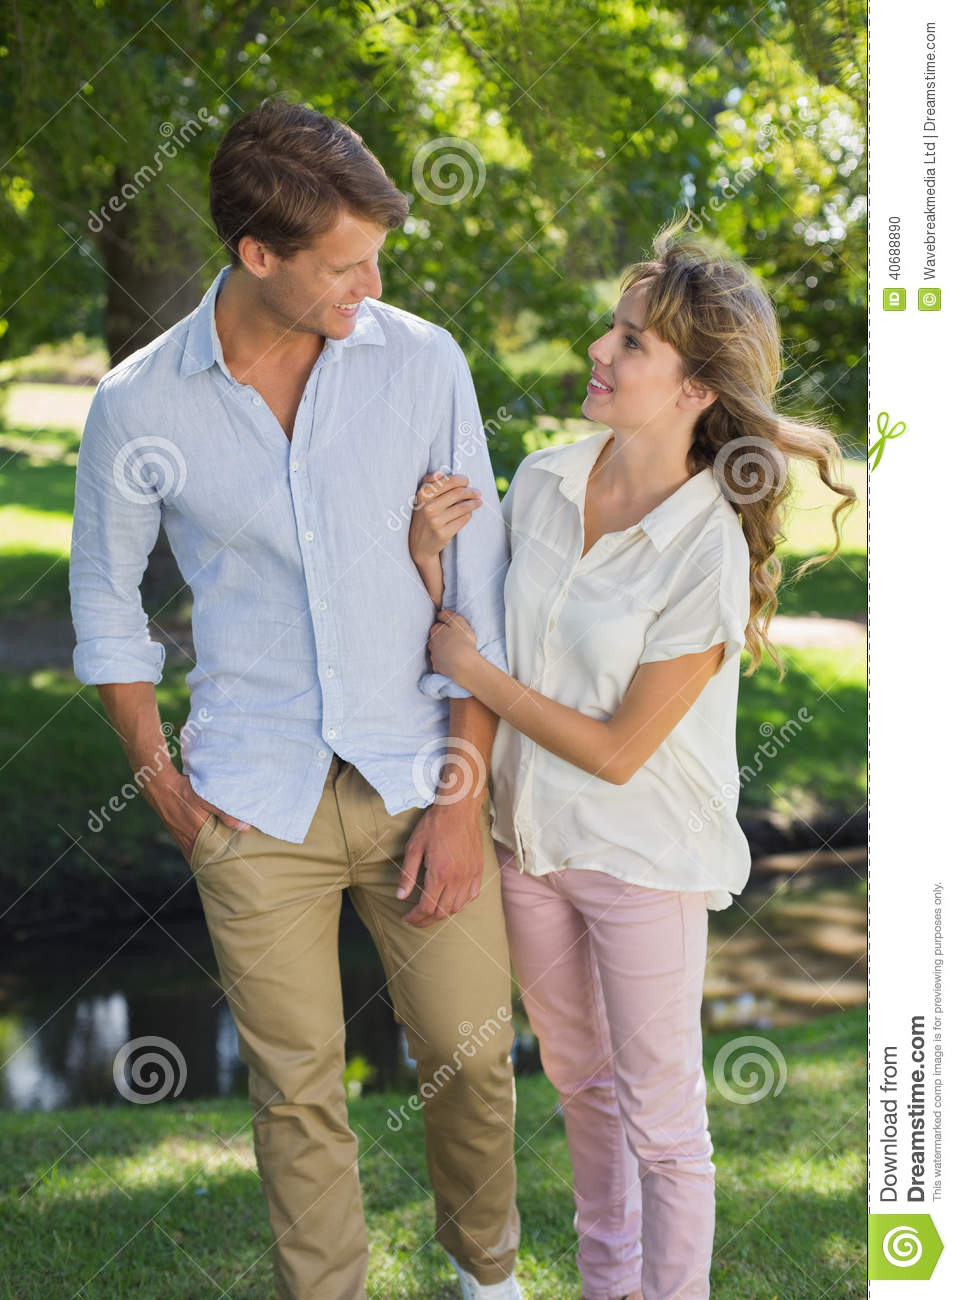 Cute Couple Walking Arm In Arm In The Park Smiling At Each ...